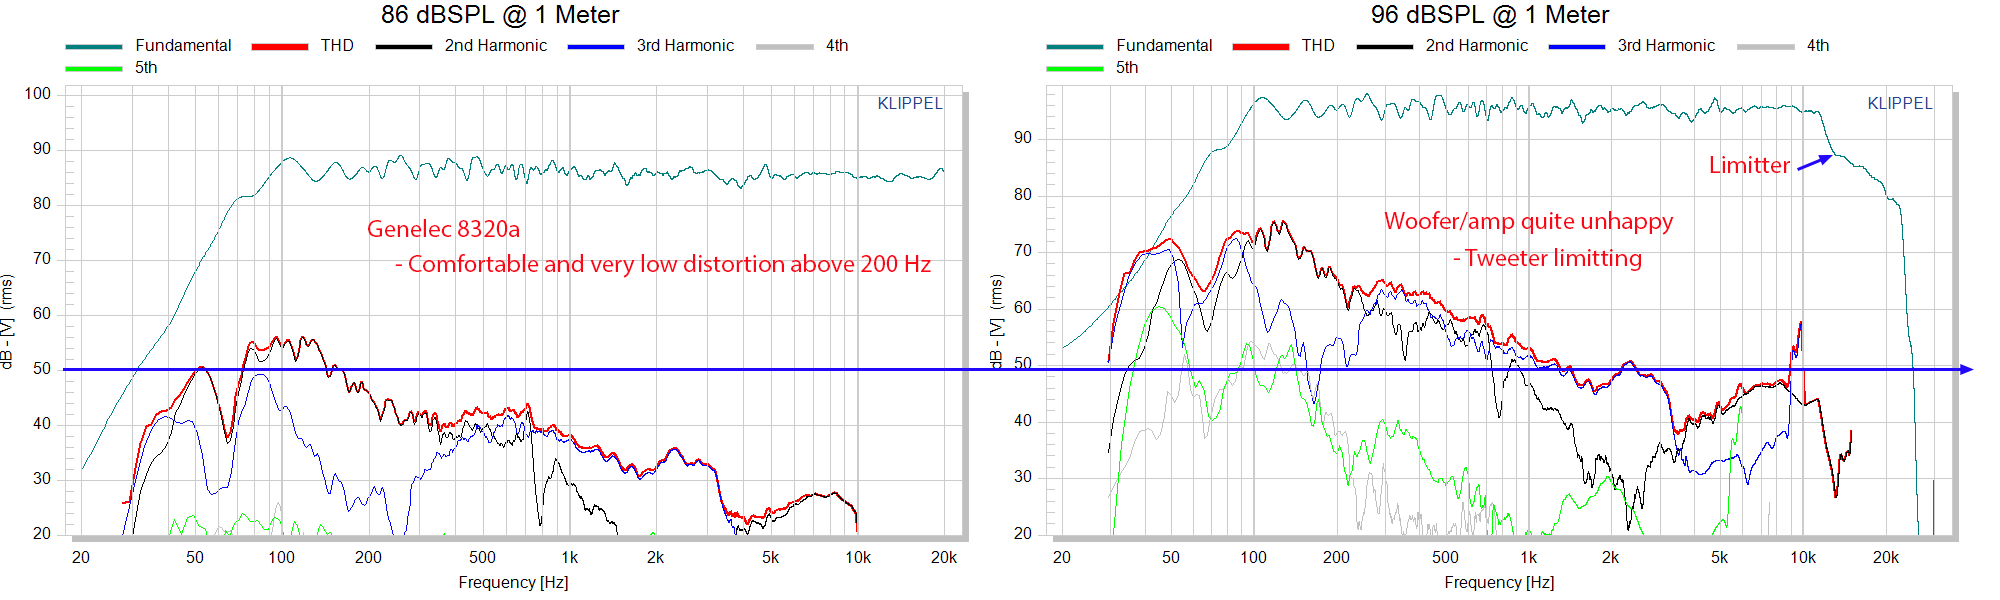 genelec 8320a THD Percentage Distortion Measurements Powered Monitor.png